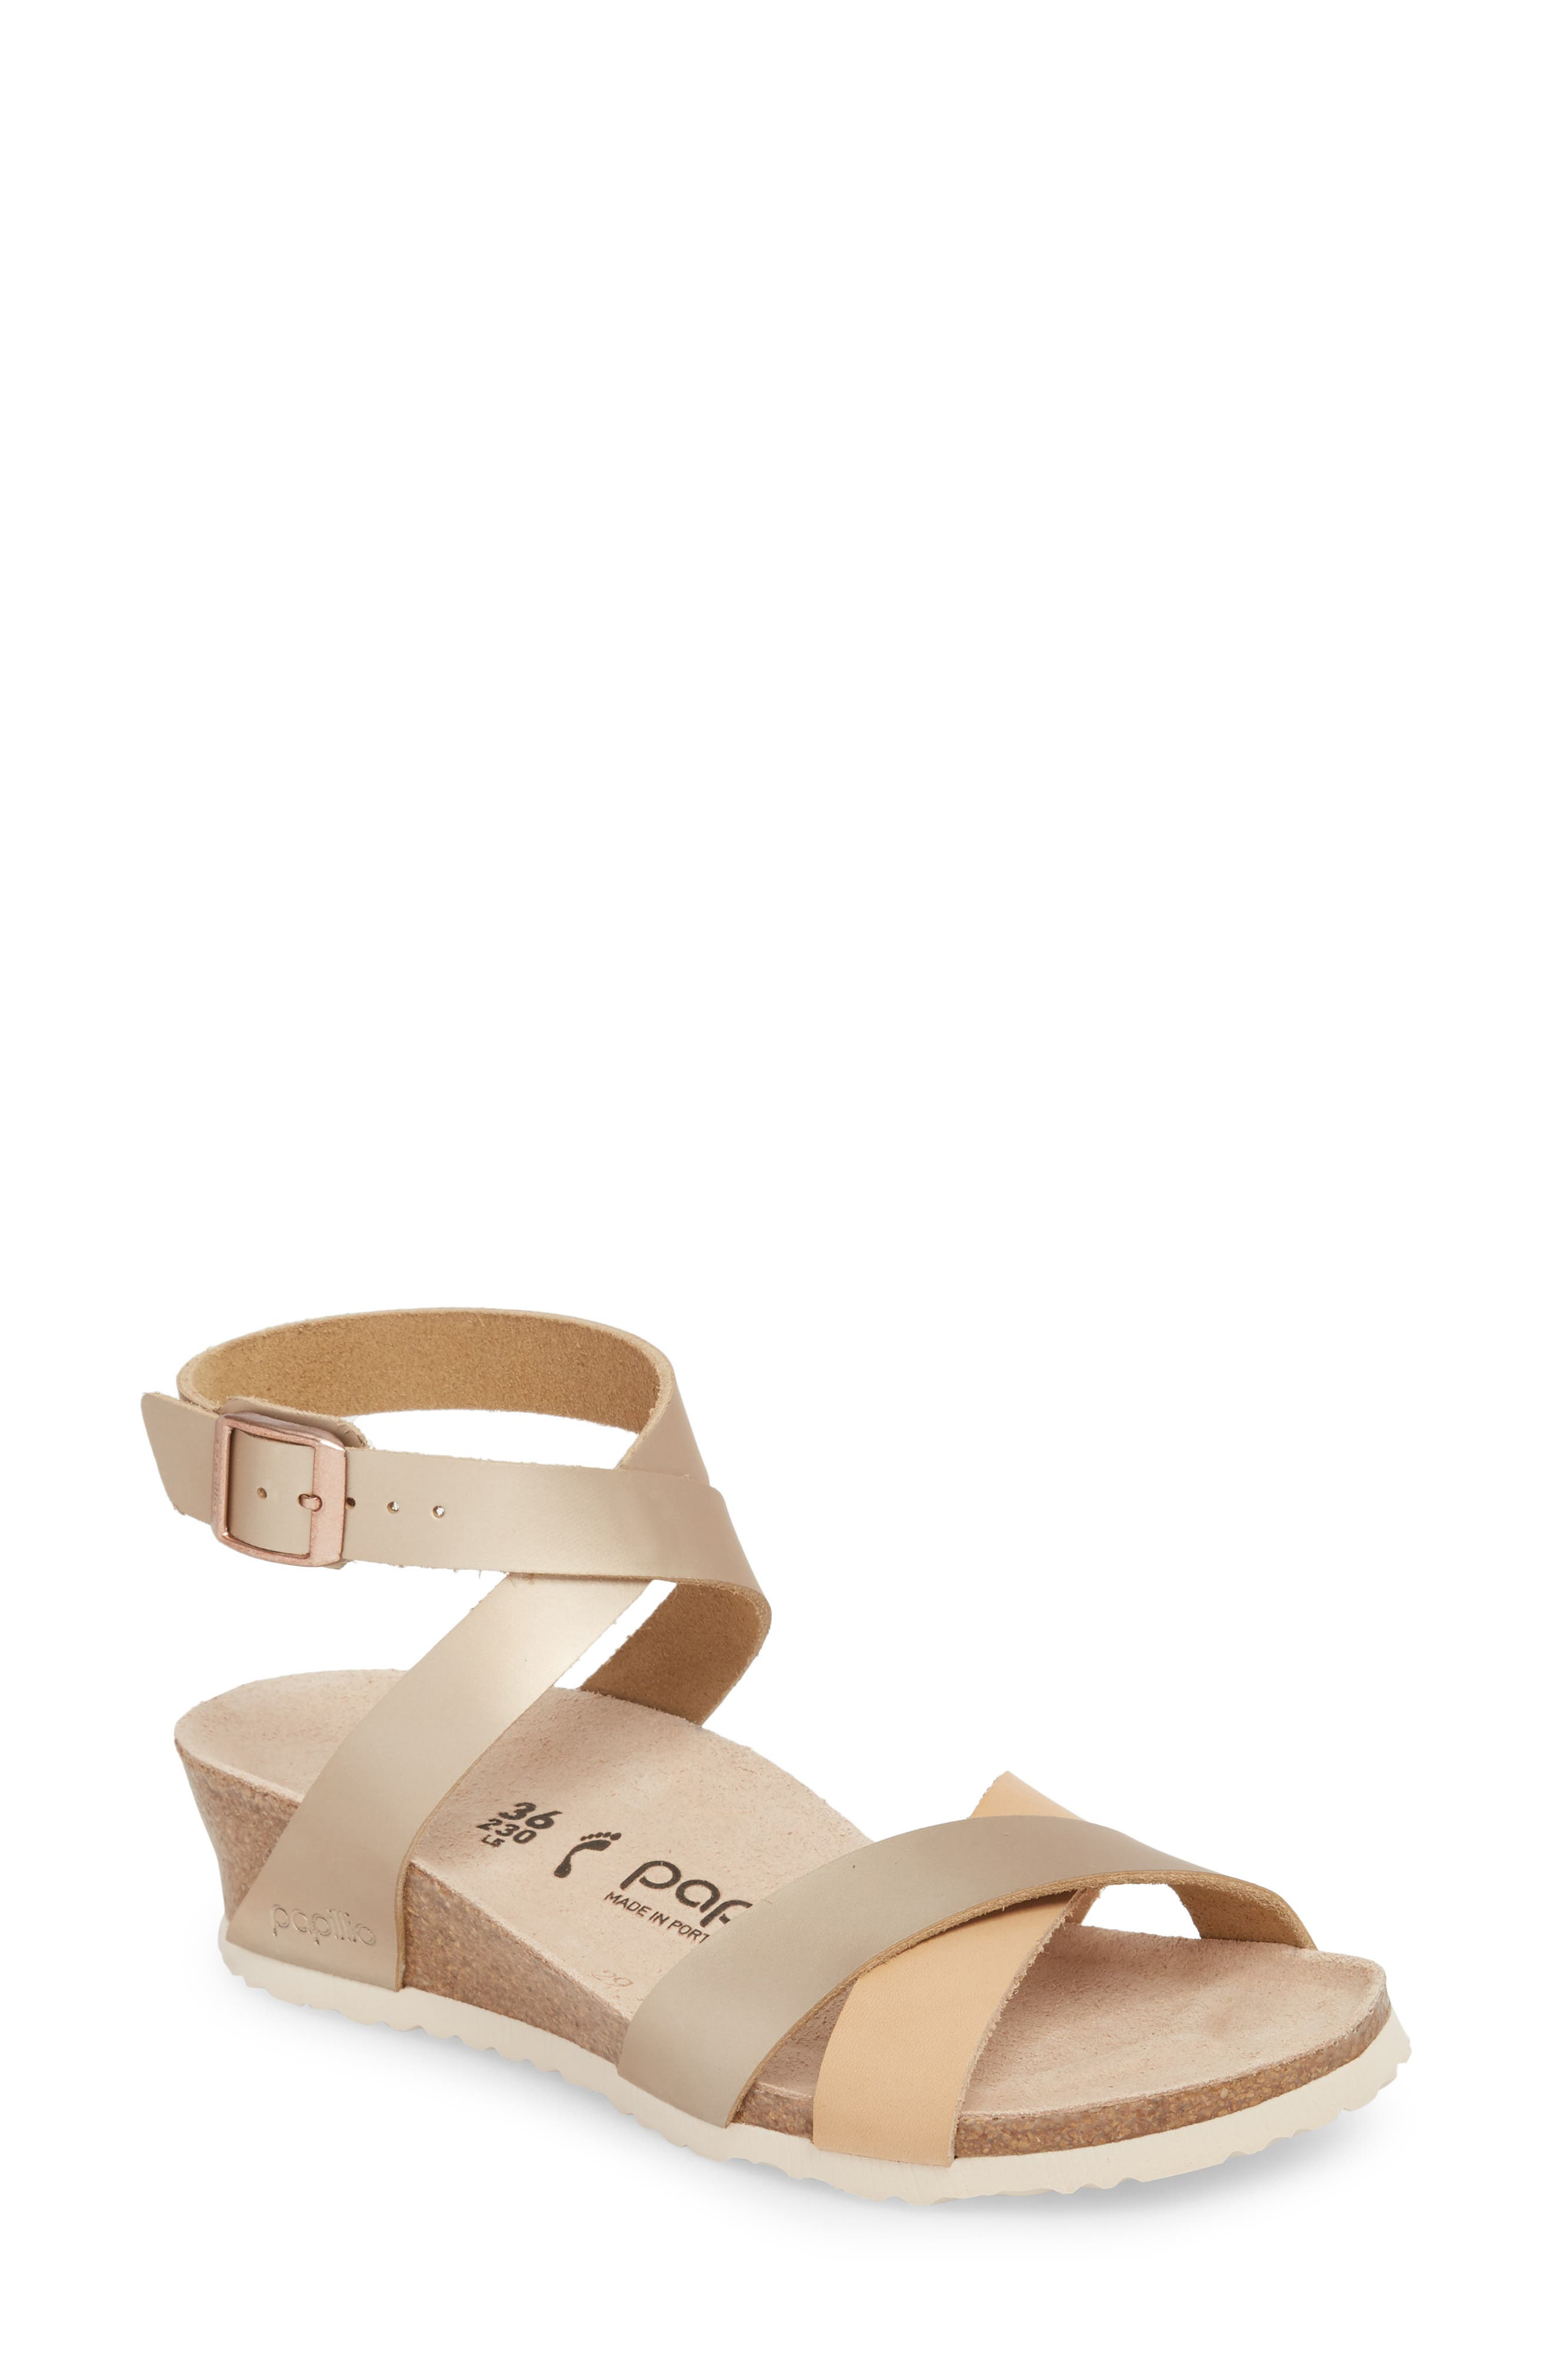 Papillio by Birkenstock Lola Wedge Sandal,                             Main thumbnail 1, color,                             Frosted Metallic Rose